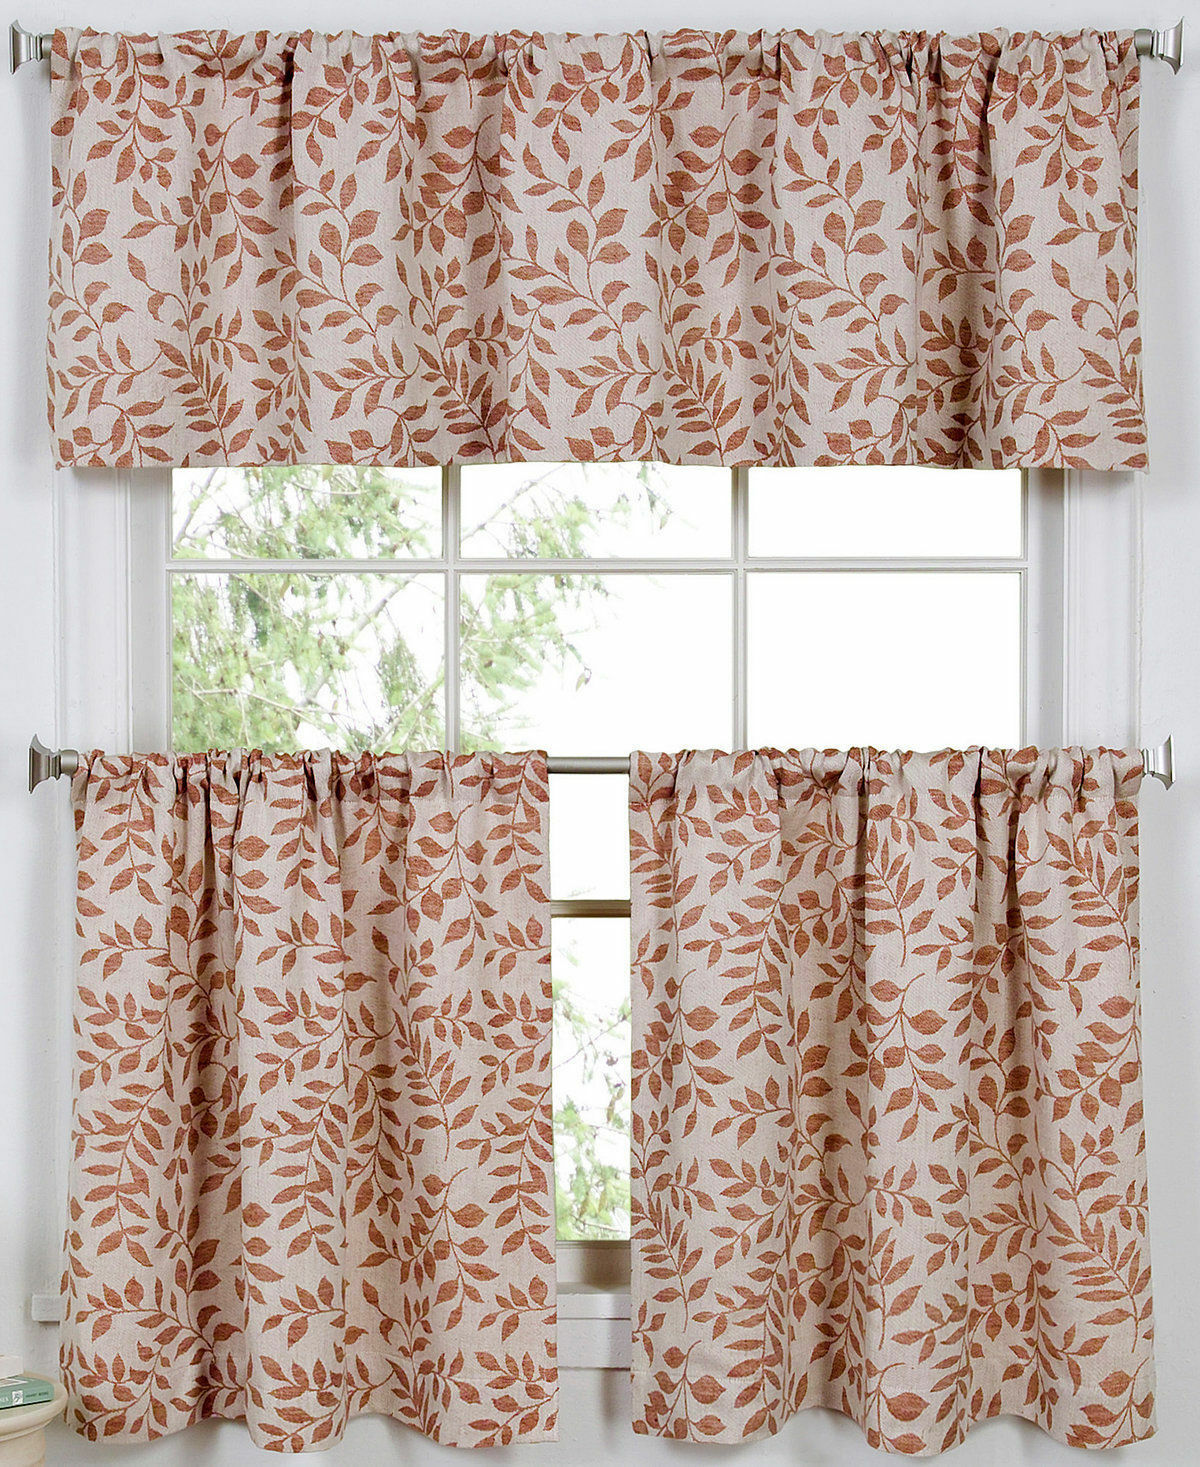 JCPENNEY ELRENE KITCHEN Valance and Tiers 3PC Set SERENE SPI